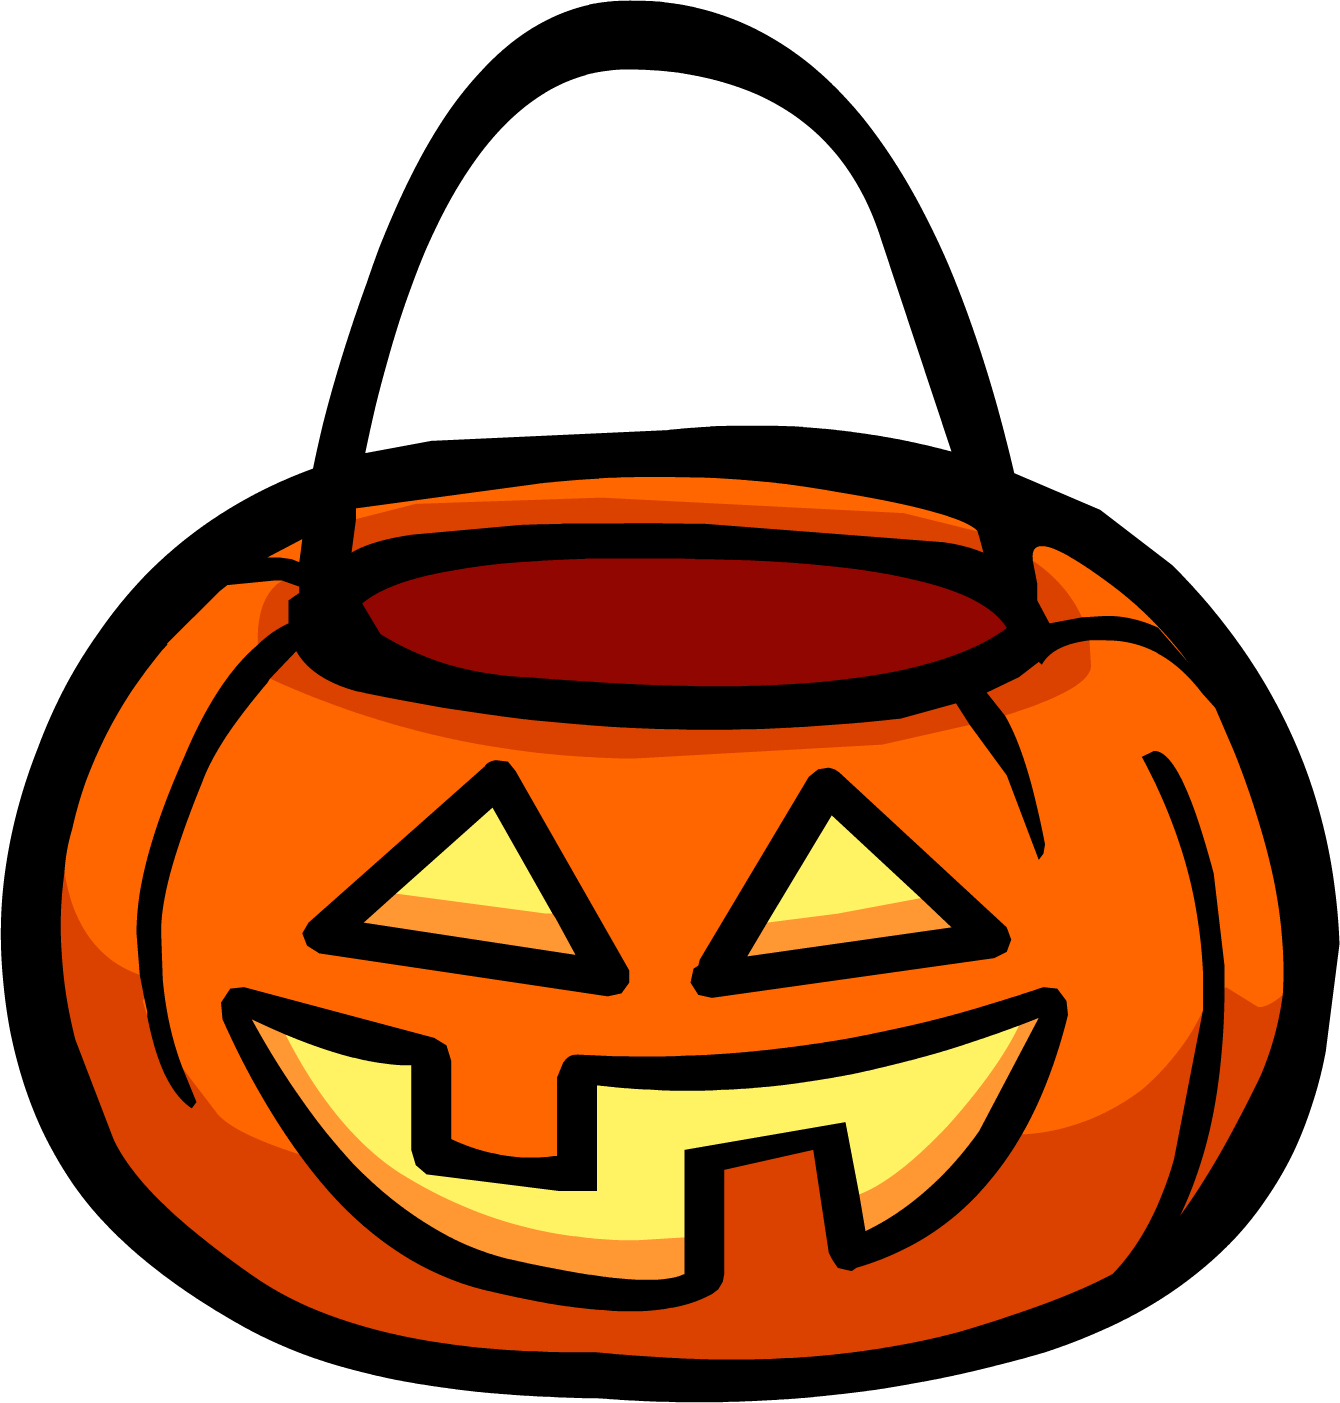 Halloween pumpkin clipart in green screen vector Pumpkin Basket | Club Penguin Rewritten Wiki | FANDOM powered by Wikia vector